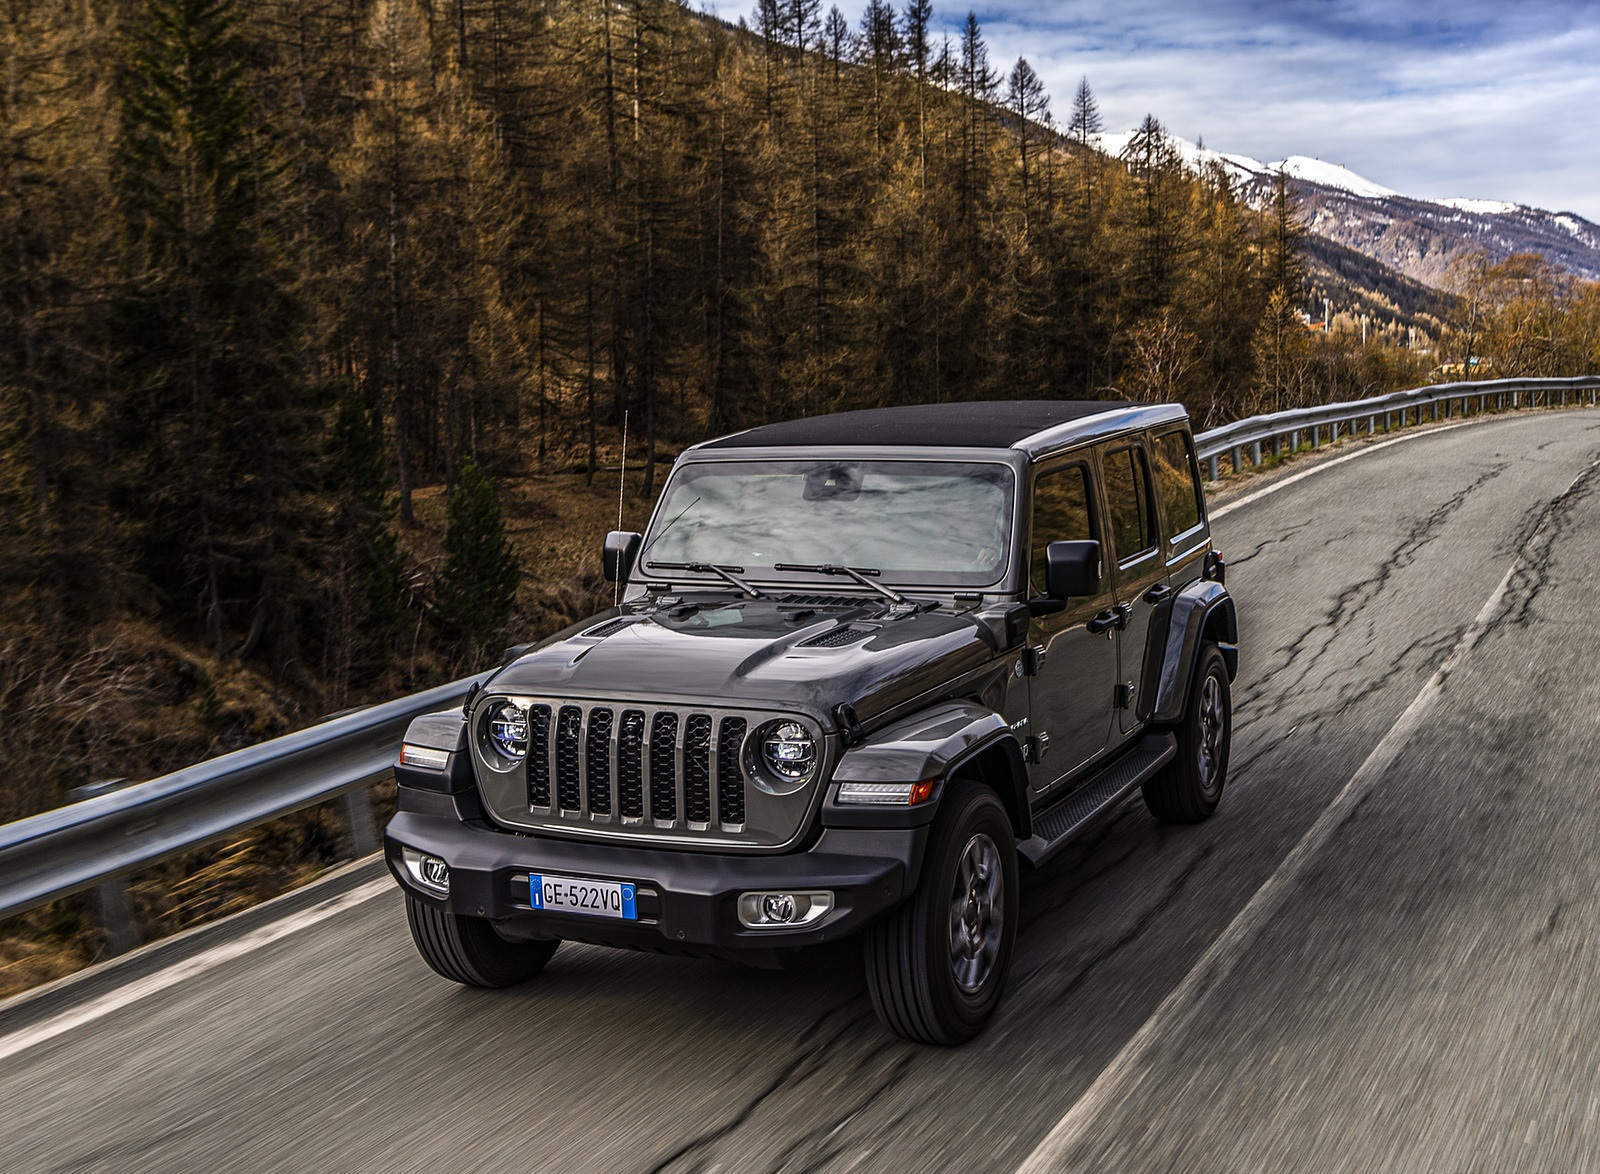 2021 Jeep Wrangler 4xe (Euro-Spec; Plug-In Hybrid) Front Three-Quarter Wallpapers (1)